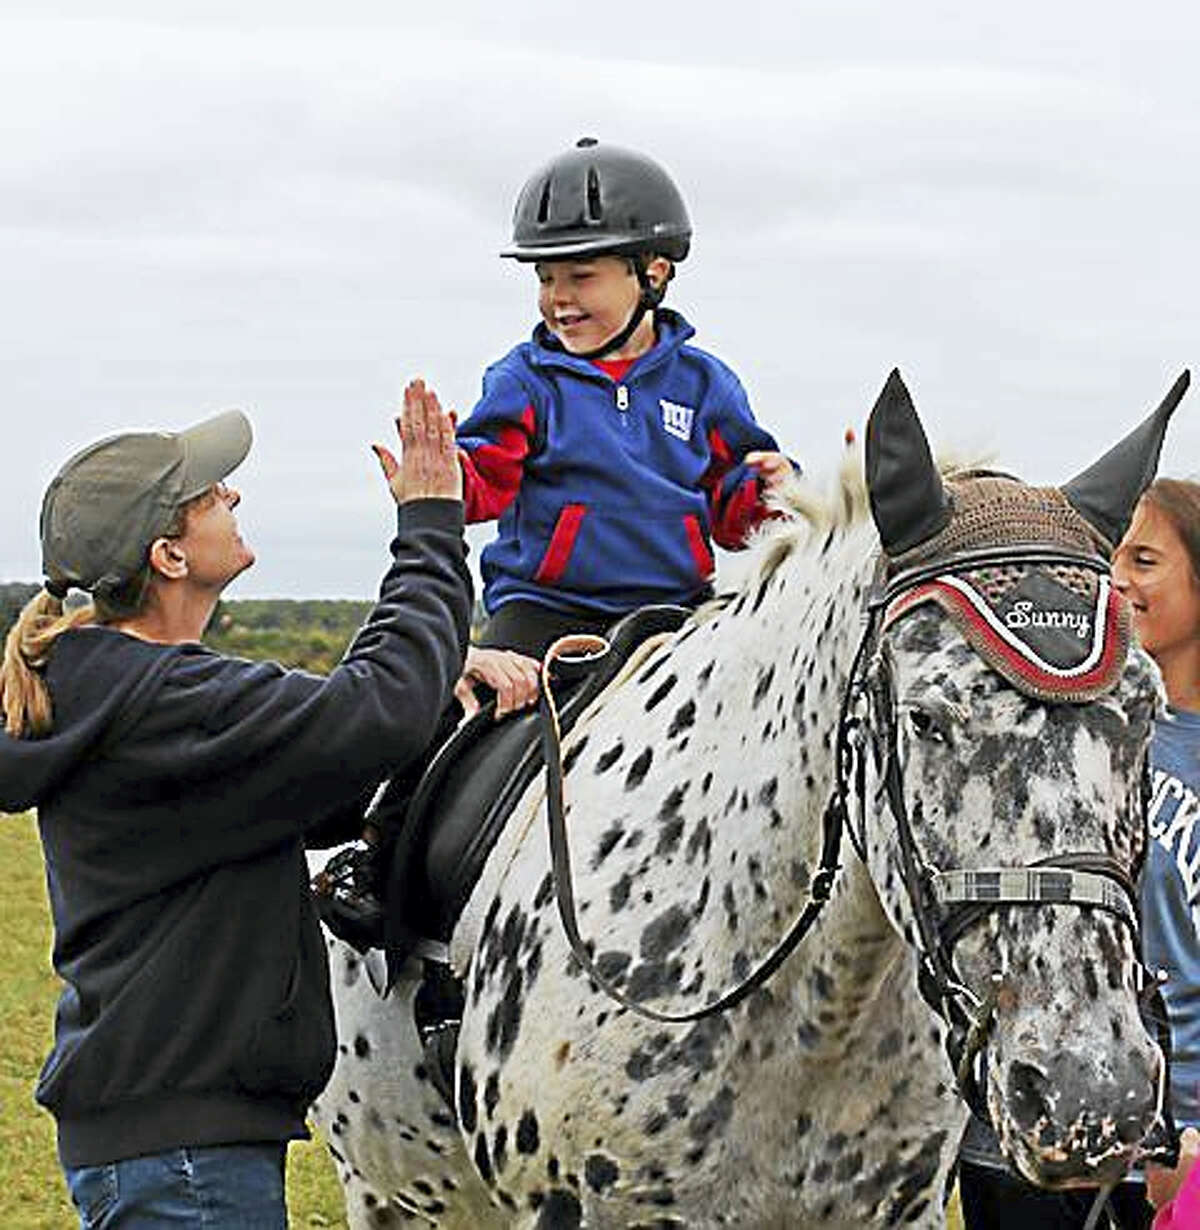 Contributed photos A 5K run/walk to benefit Little Britches, a therapeutic riding program for children and adults, will be held Sunday in Bridgewater.